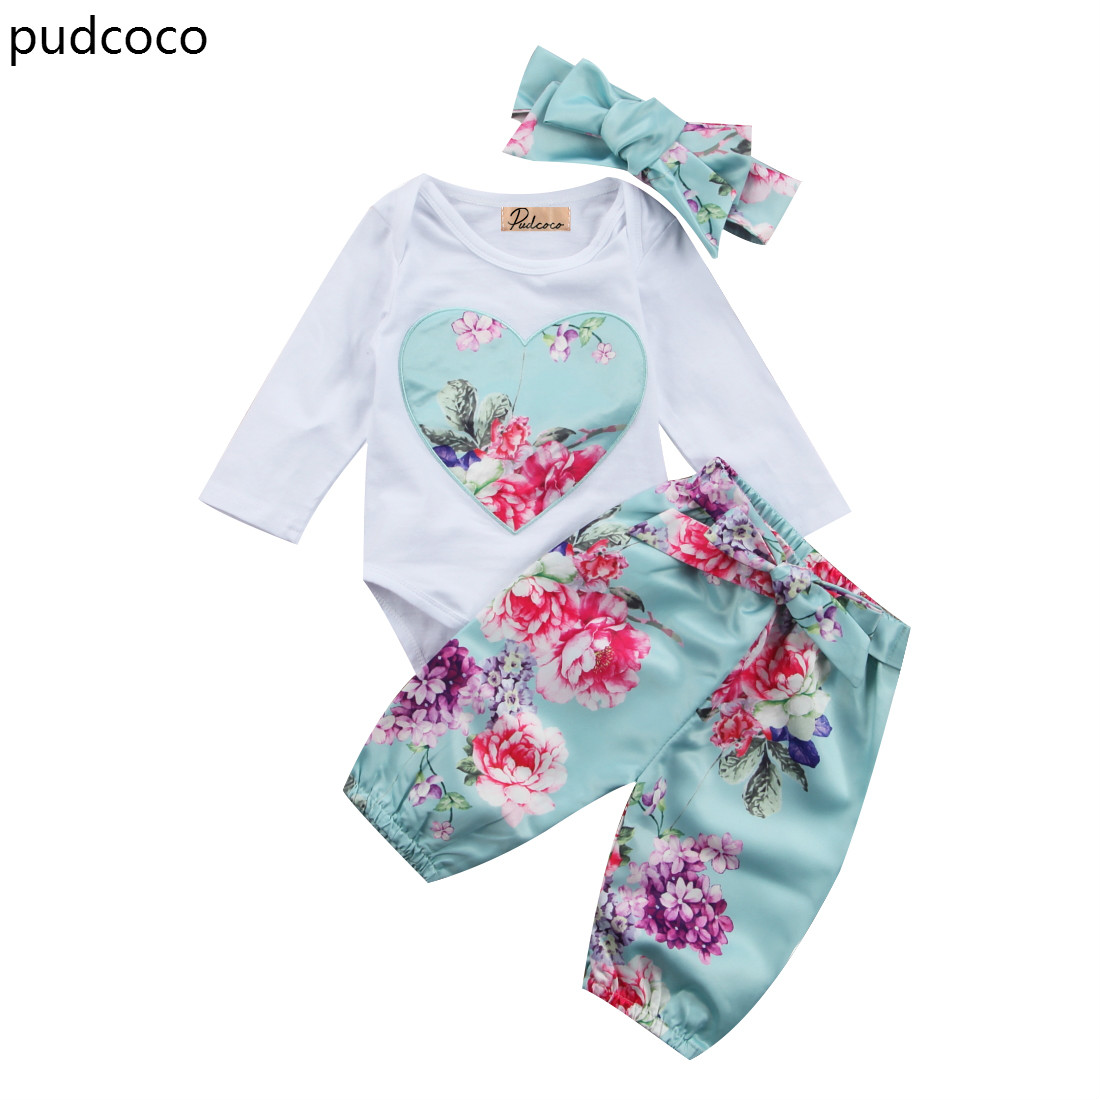 3pcs Floral Love Heart Girls Outfits Set Newborn Kids Baby Girl Long Sleeve Rompers Blue Flower Pants Headband Clothes Set 3pcs 2018 fashion baby girls clothes set long sleeve flower t shirt pants headband newborn infant baby girl toddler clothing set